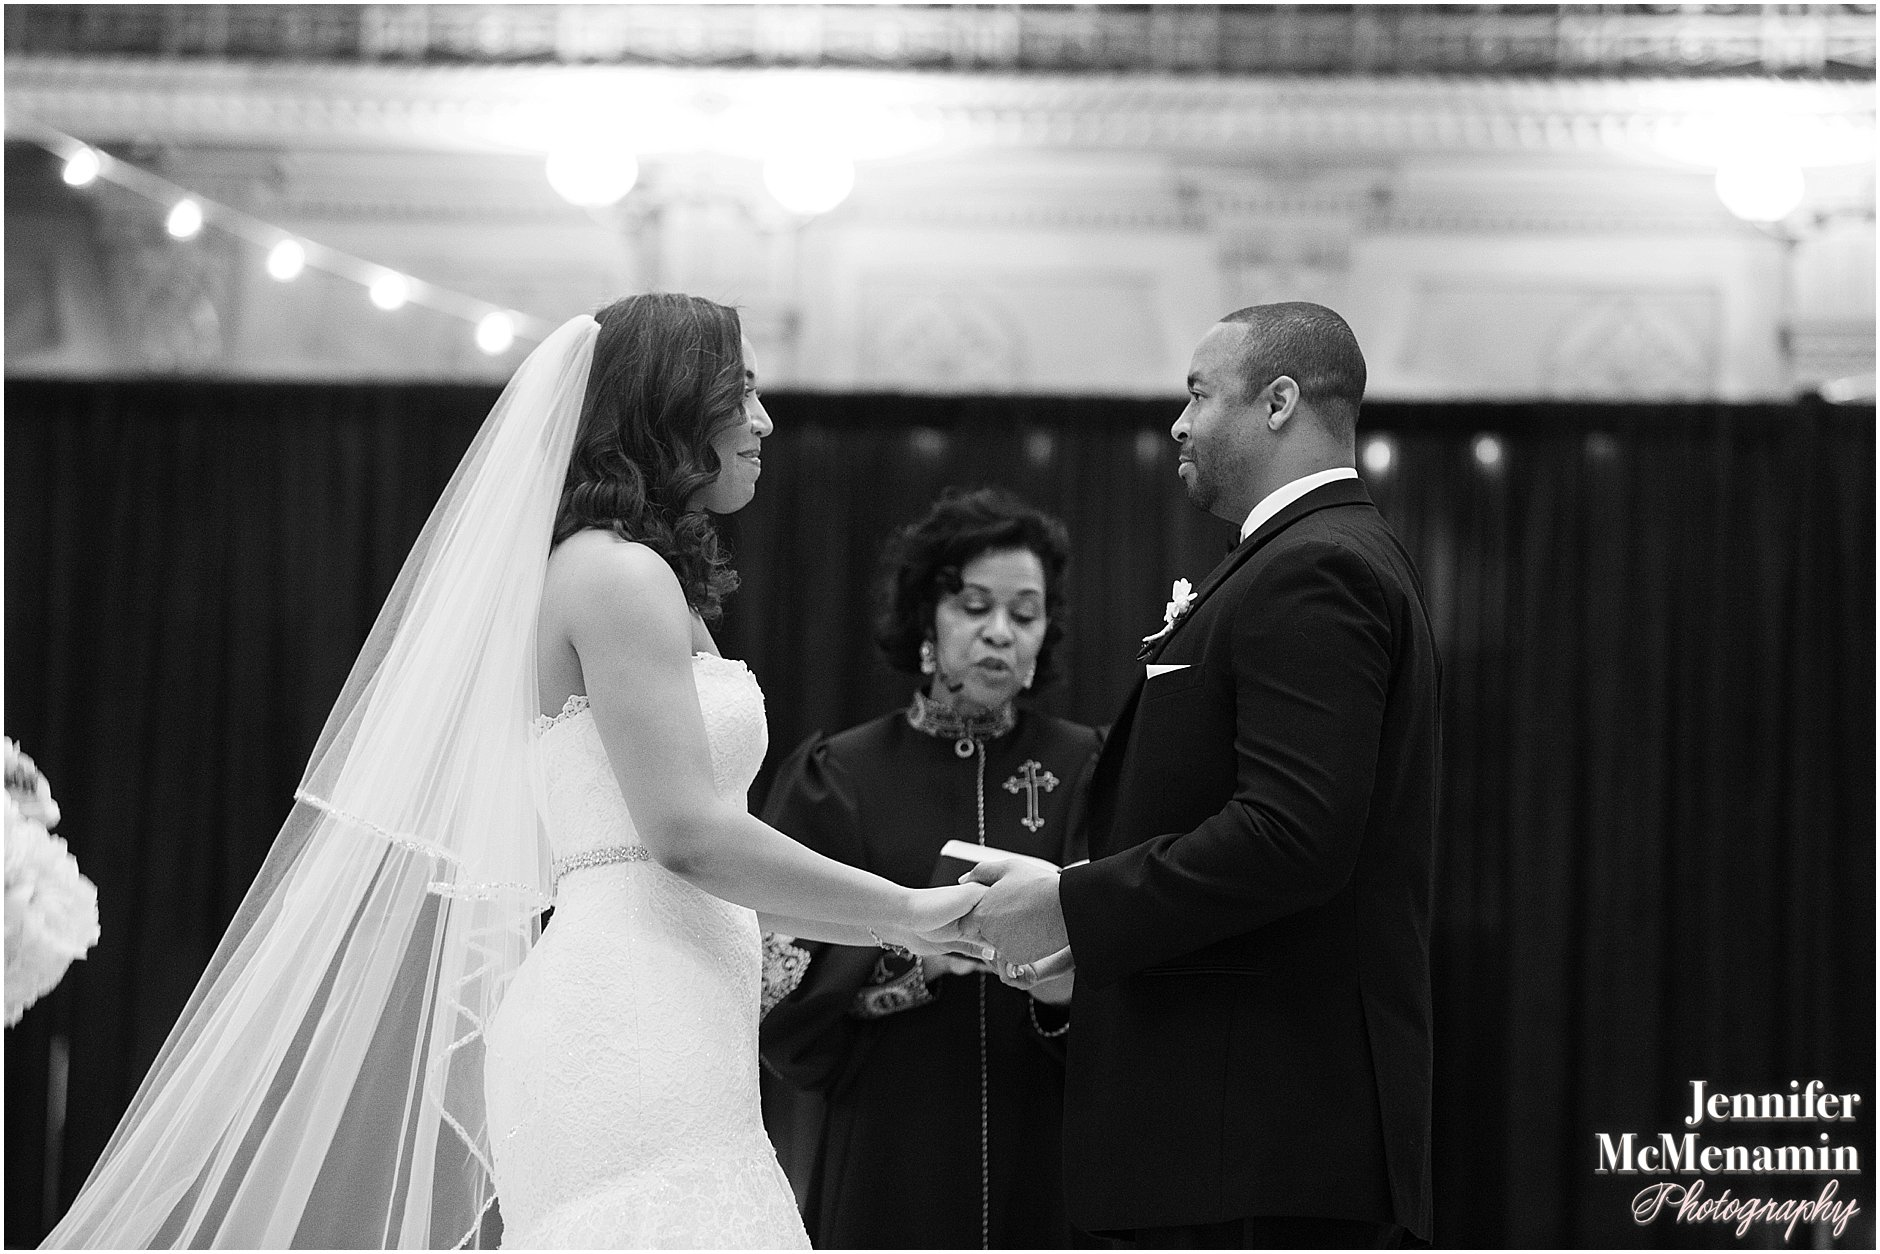 044-Peabody-Library-Wedding_WilsonPatterson_01846-0391_Jennifer-McMenamin-Photography